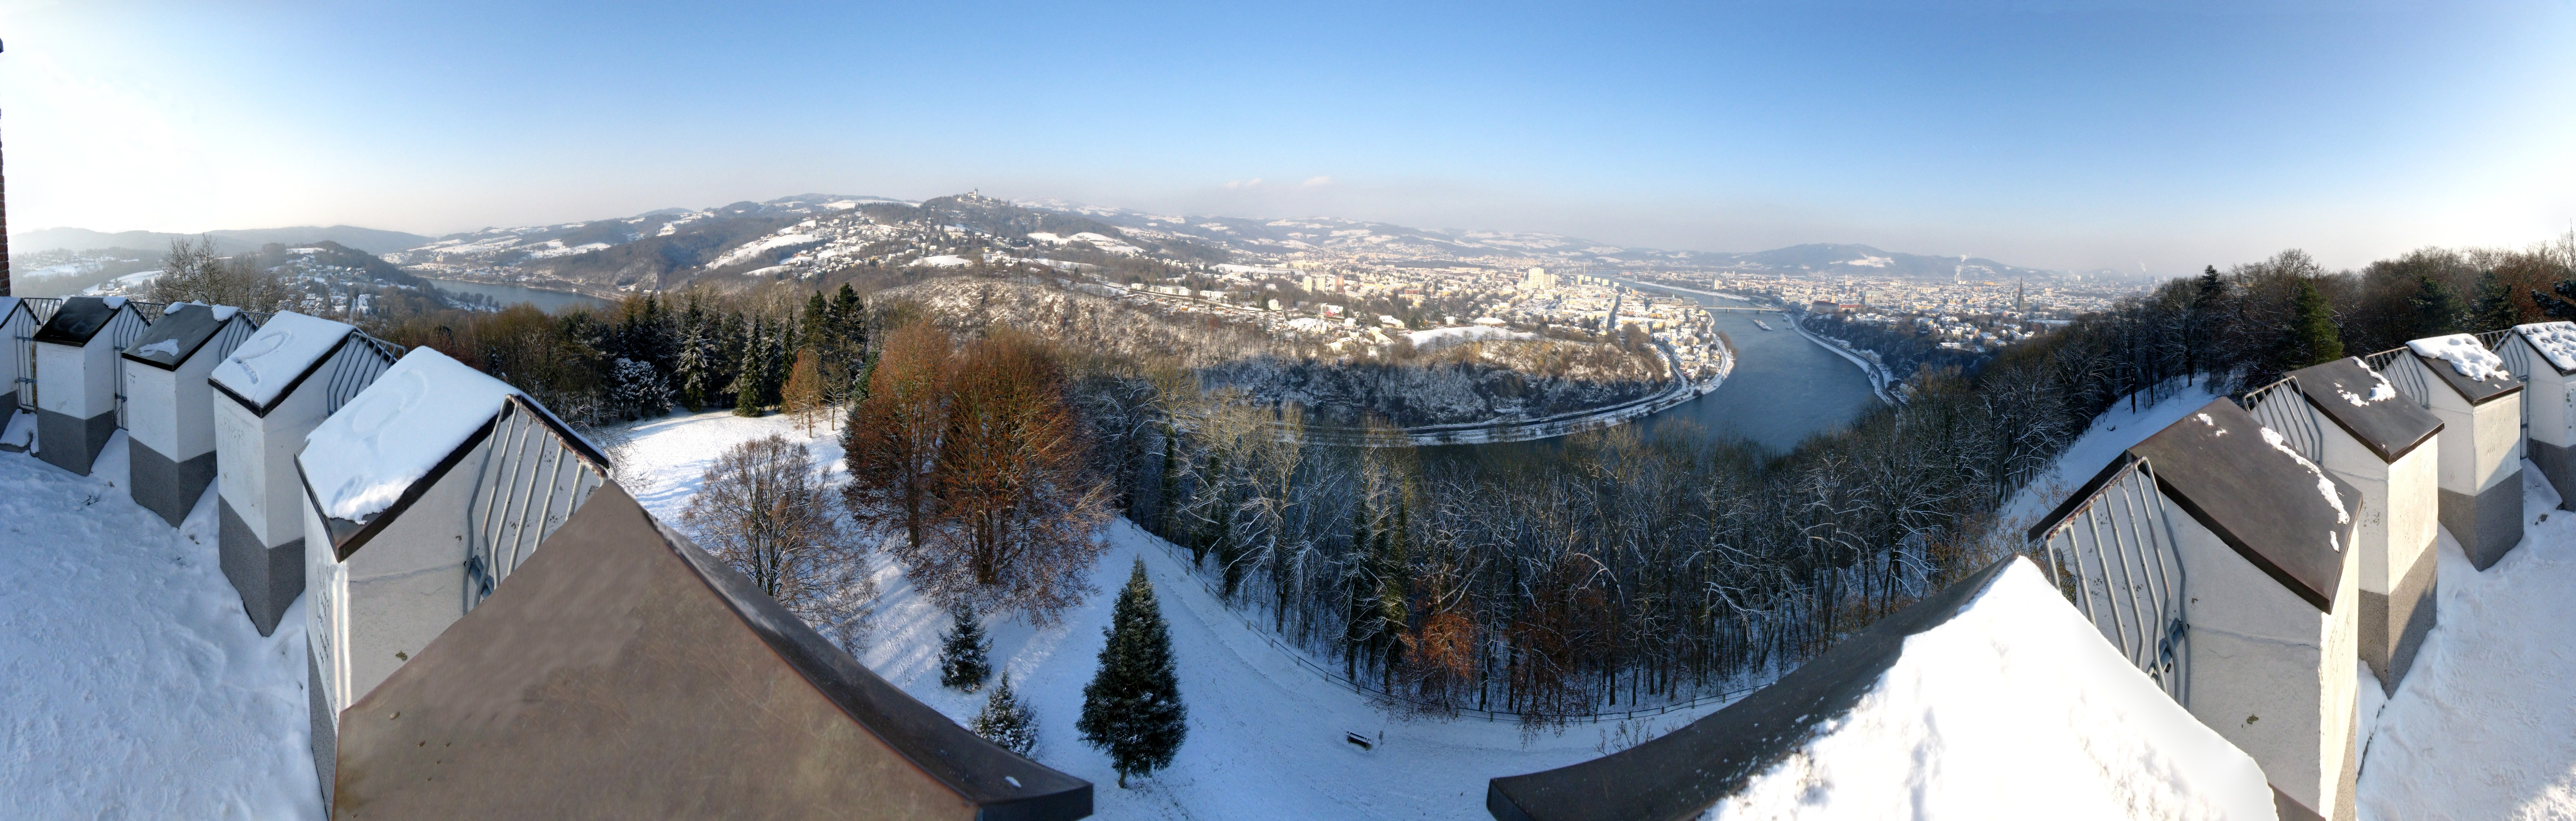 Donautal Linz Winter.tif